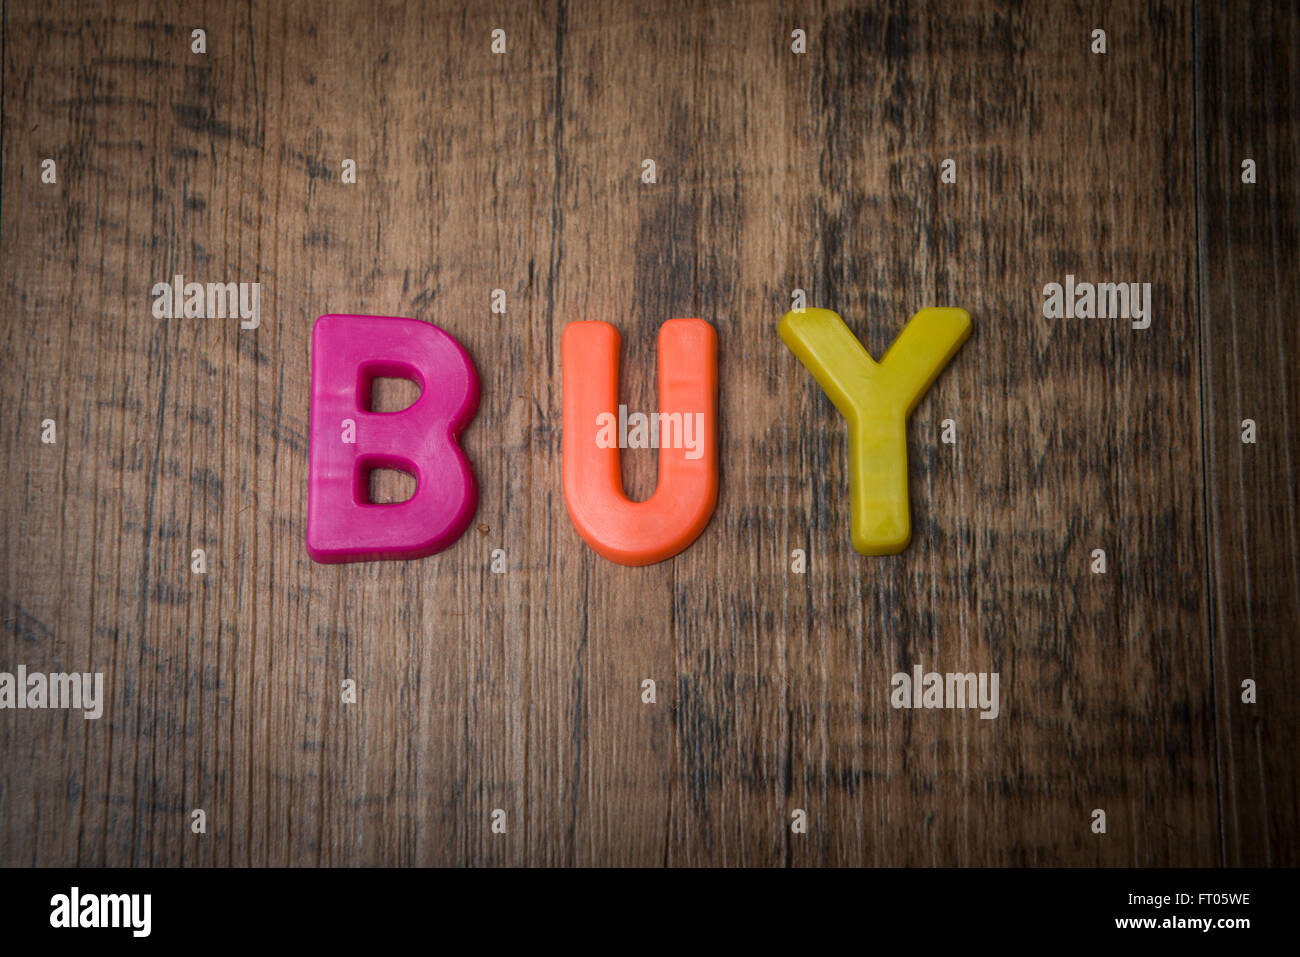 fridge magnet coloured letters spelling out buy - Stock Image